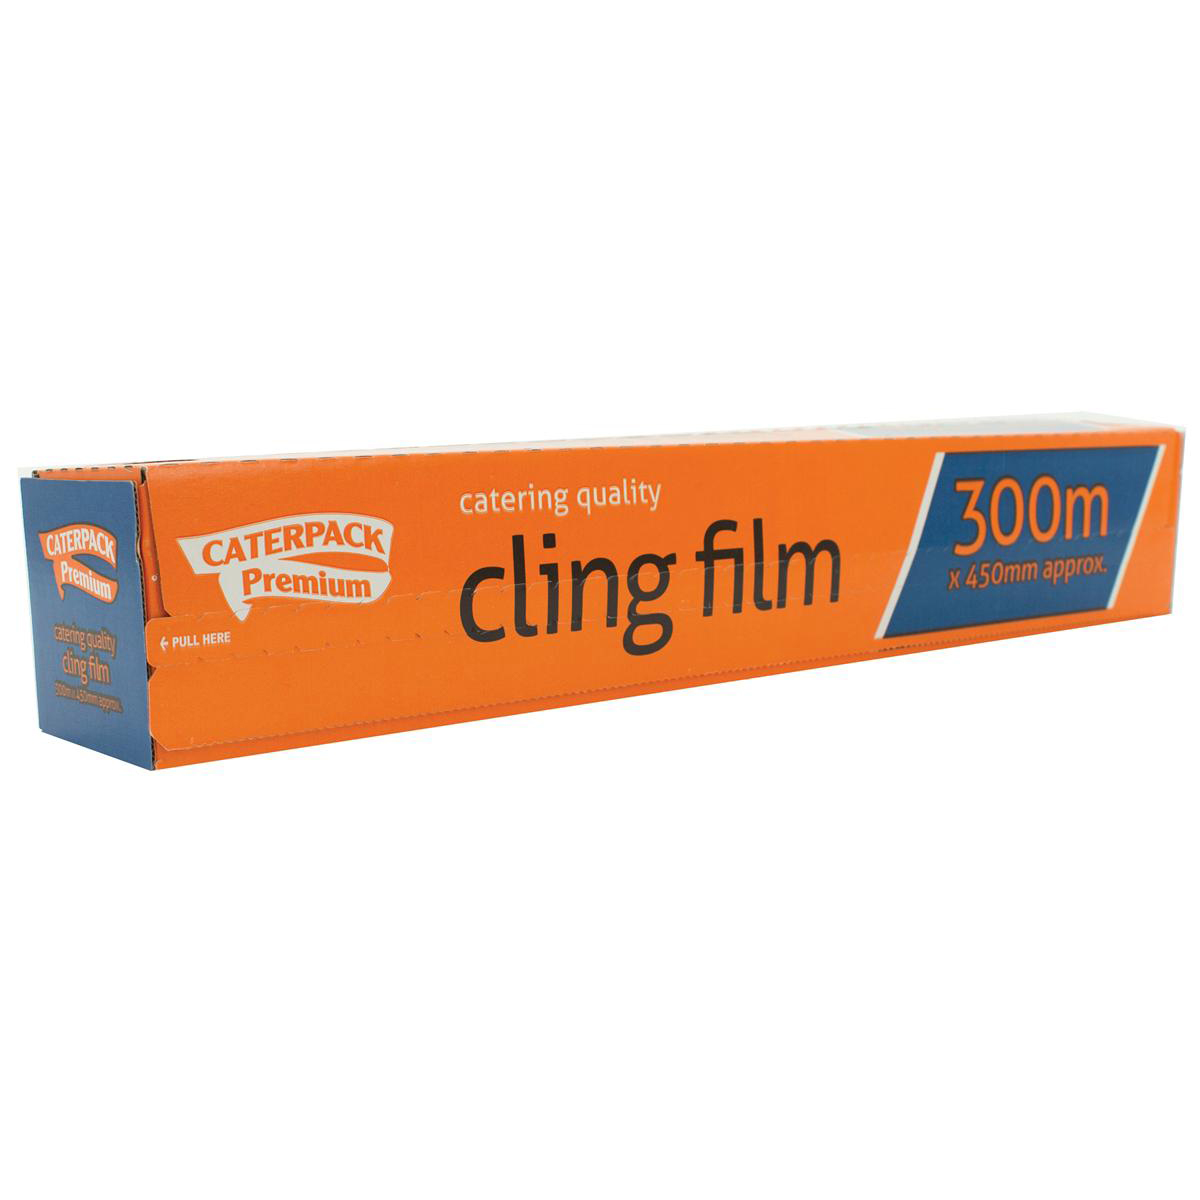 Caterpack Cling Film Antibacterial 450mm x 30m Ref 0163